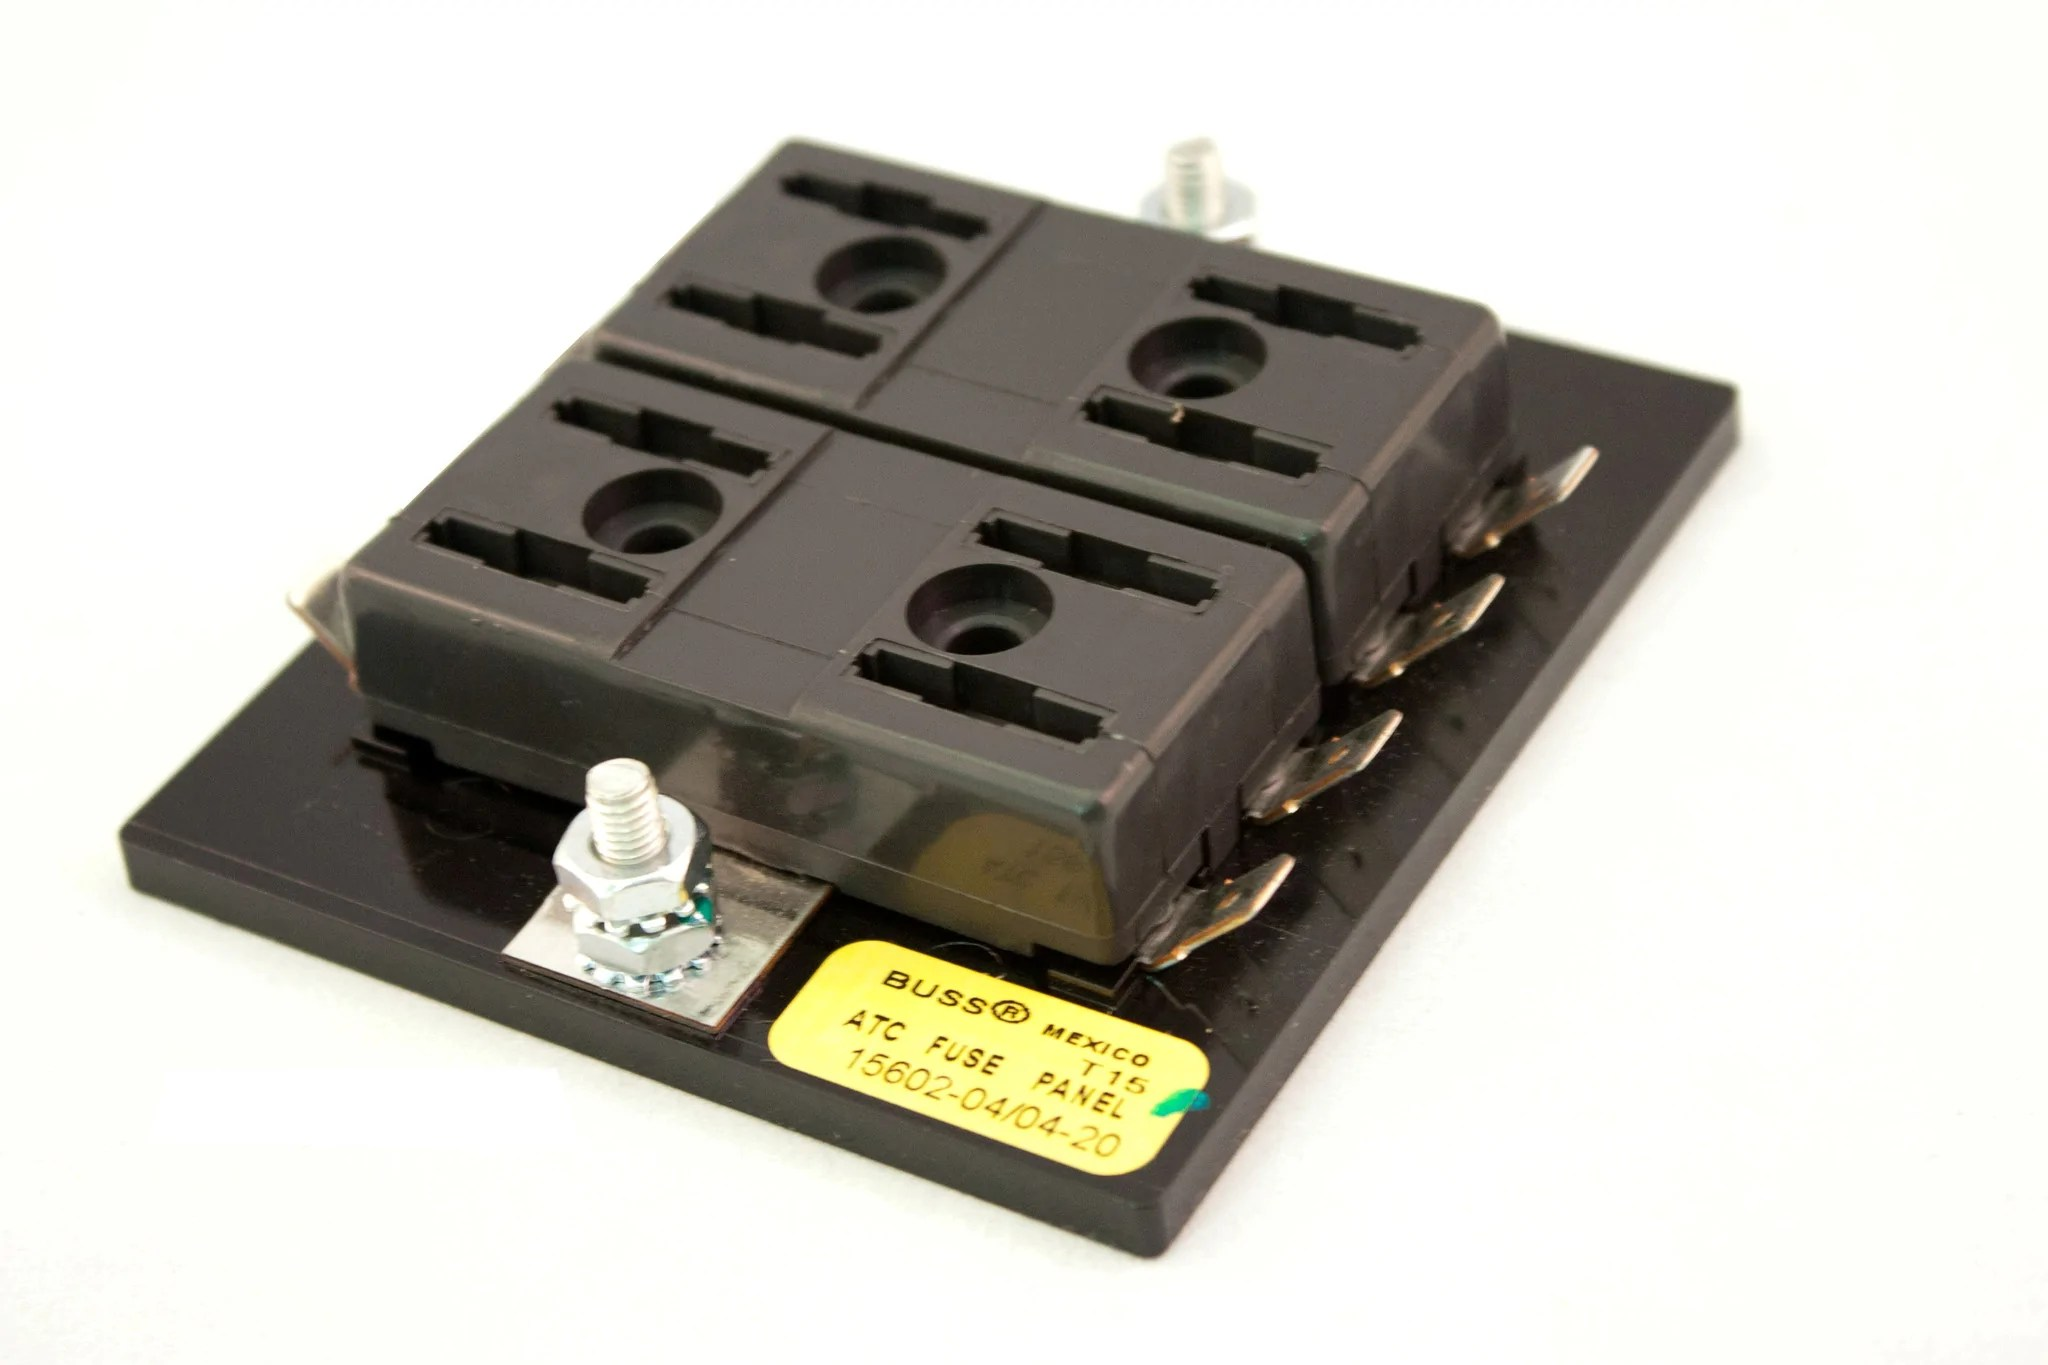 medium resolution of part 15602 04 04 20 bussmann fuse block for atof atc fuses or blade road runner connect inc